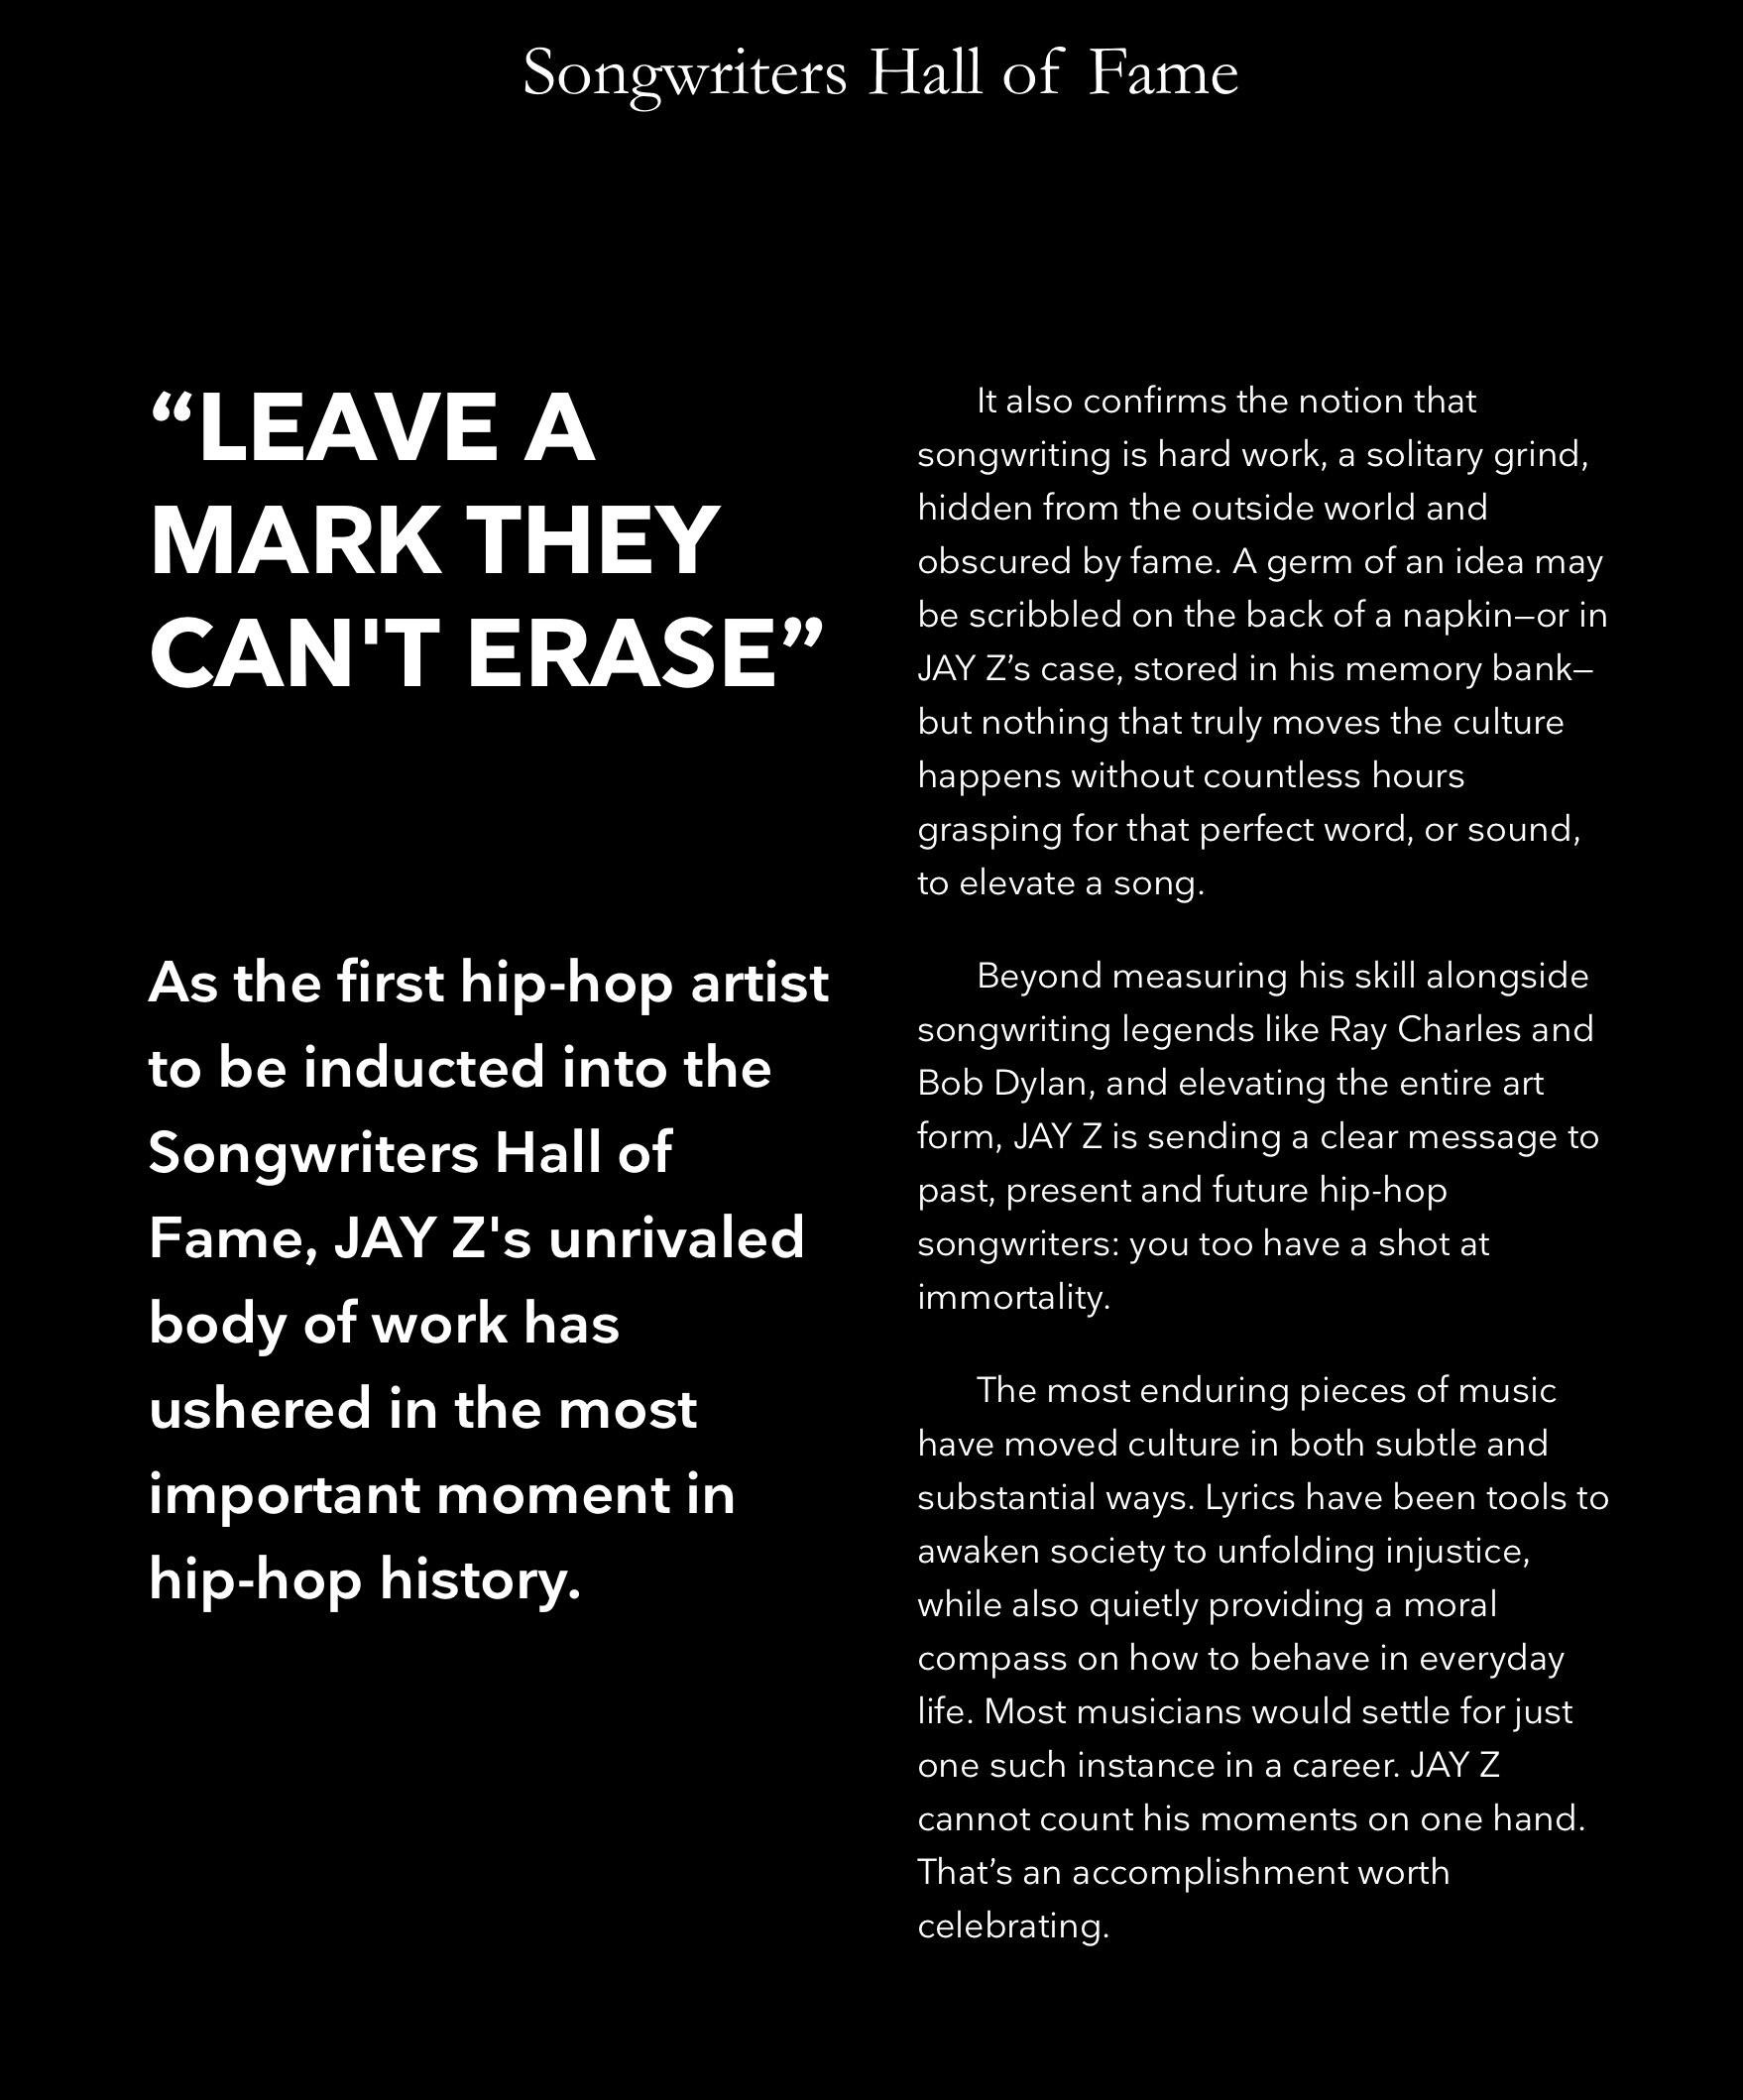 Jay Z Inducted Into The Songwriters Hall of Fame Then Took To Twitter To Celebrate